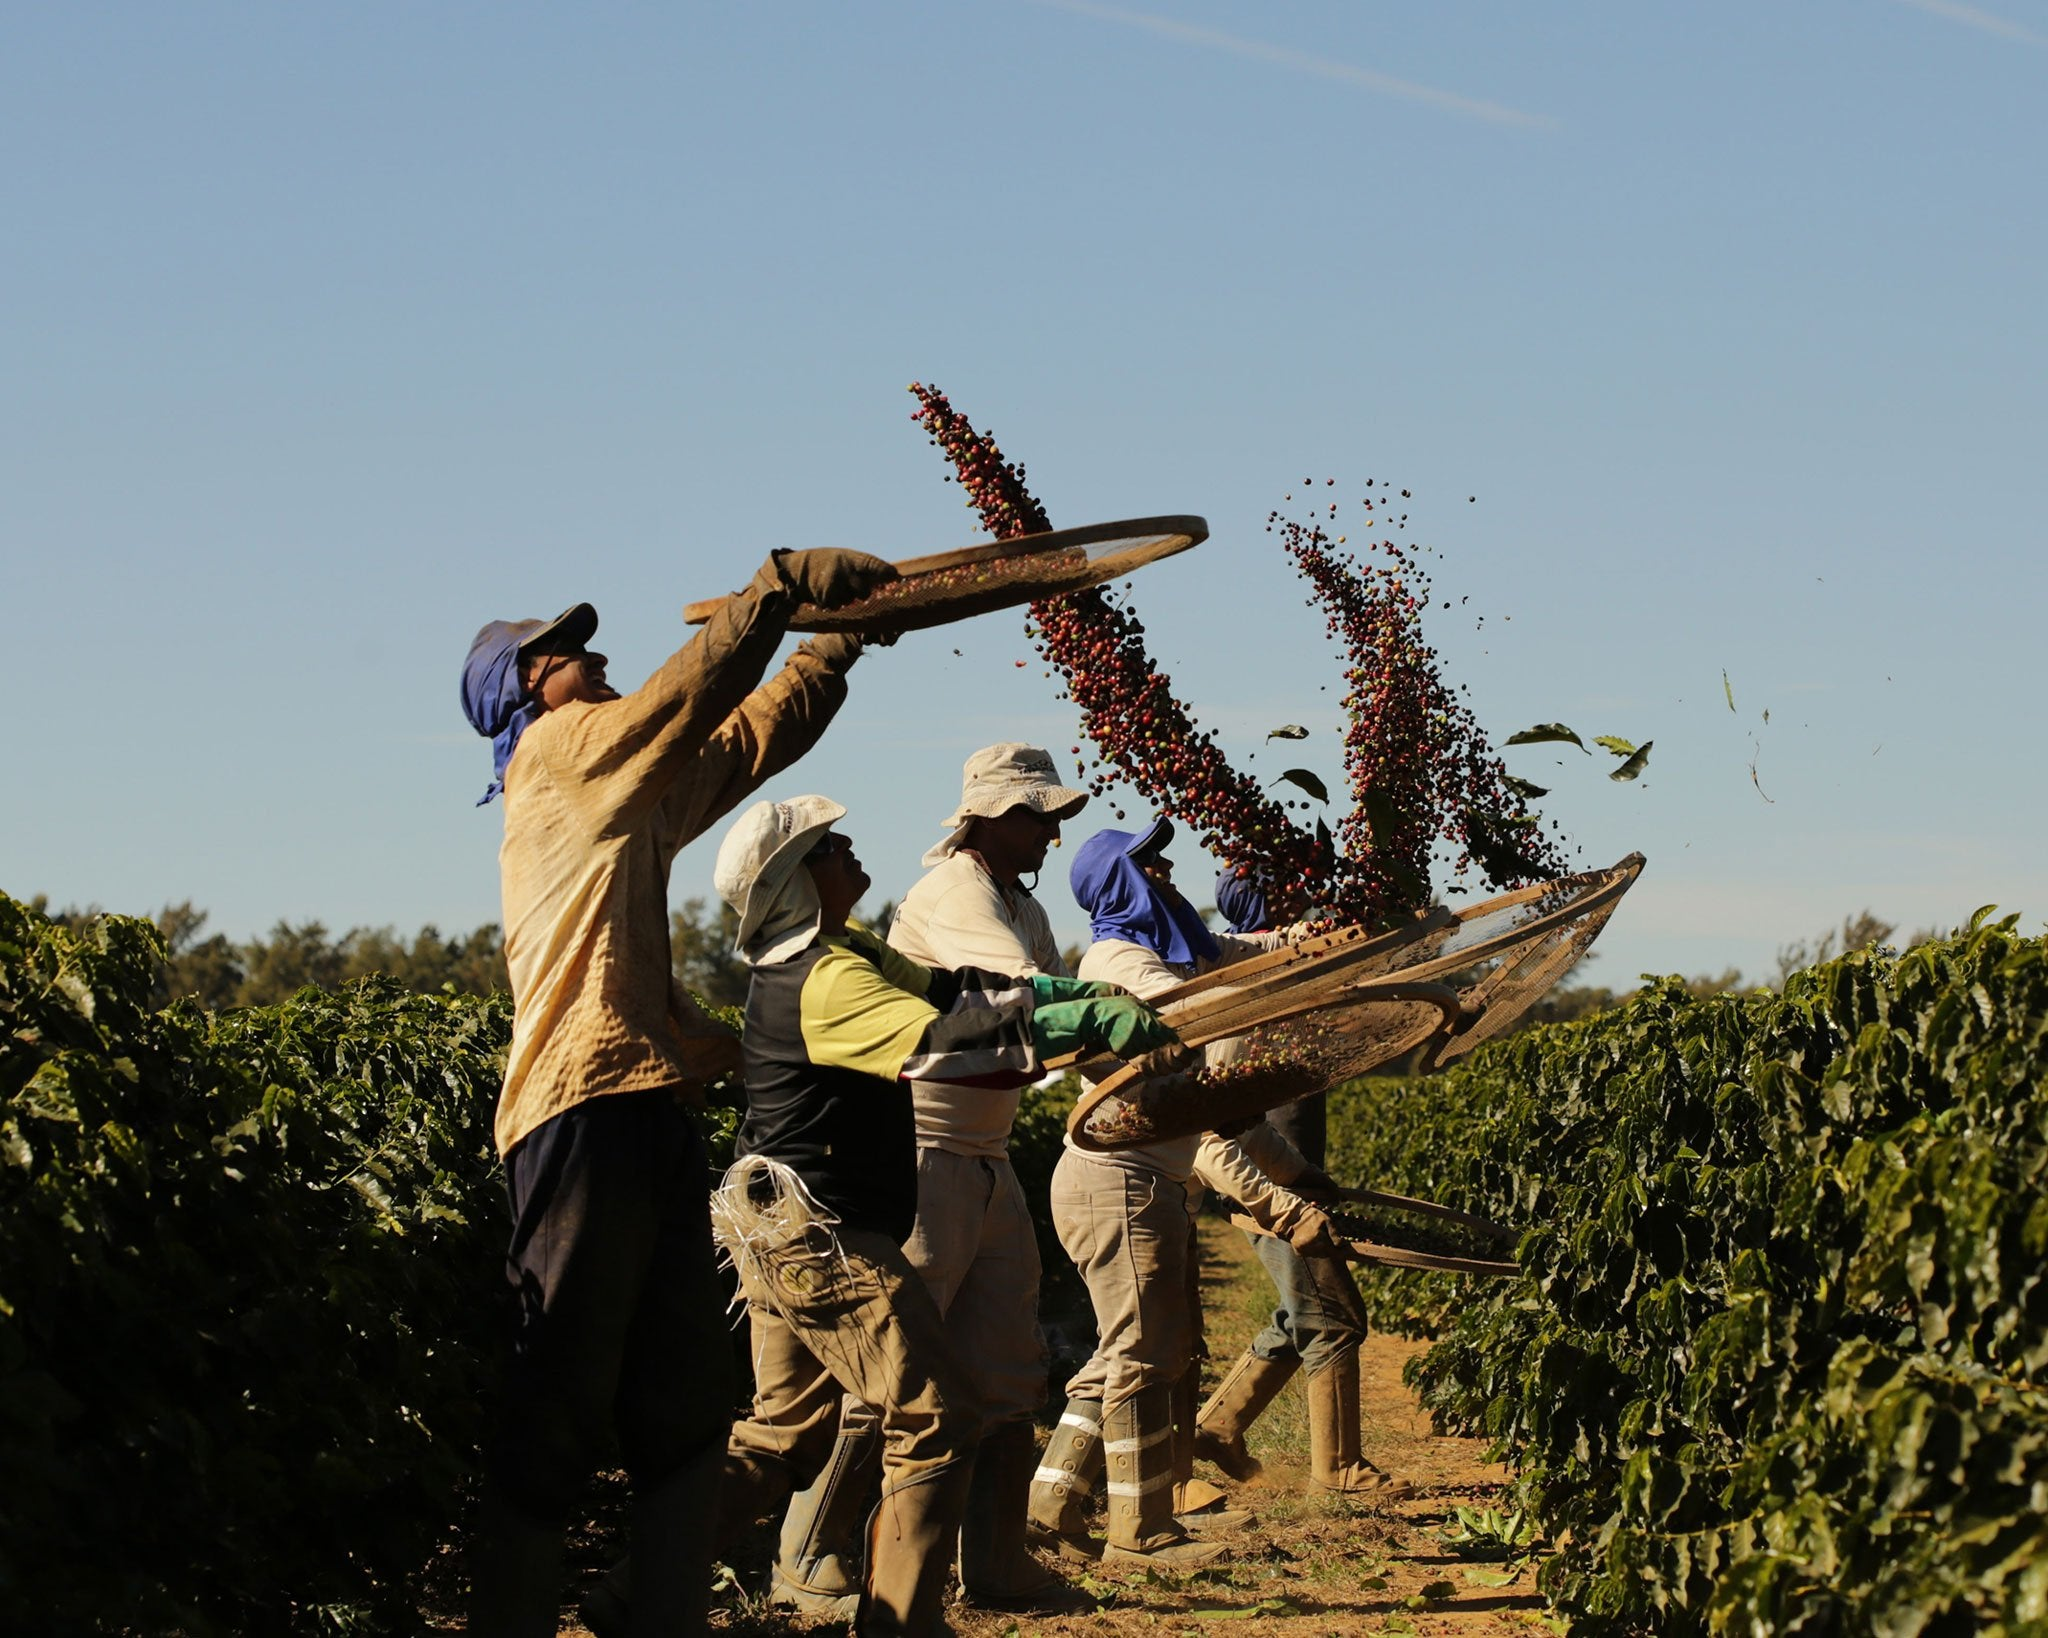 Rio Brilhante Brazil coffee cherries being tossed in the air